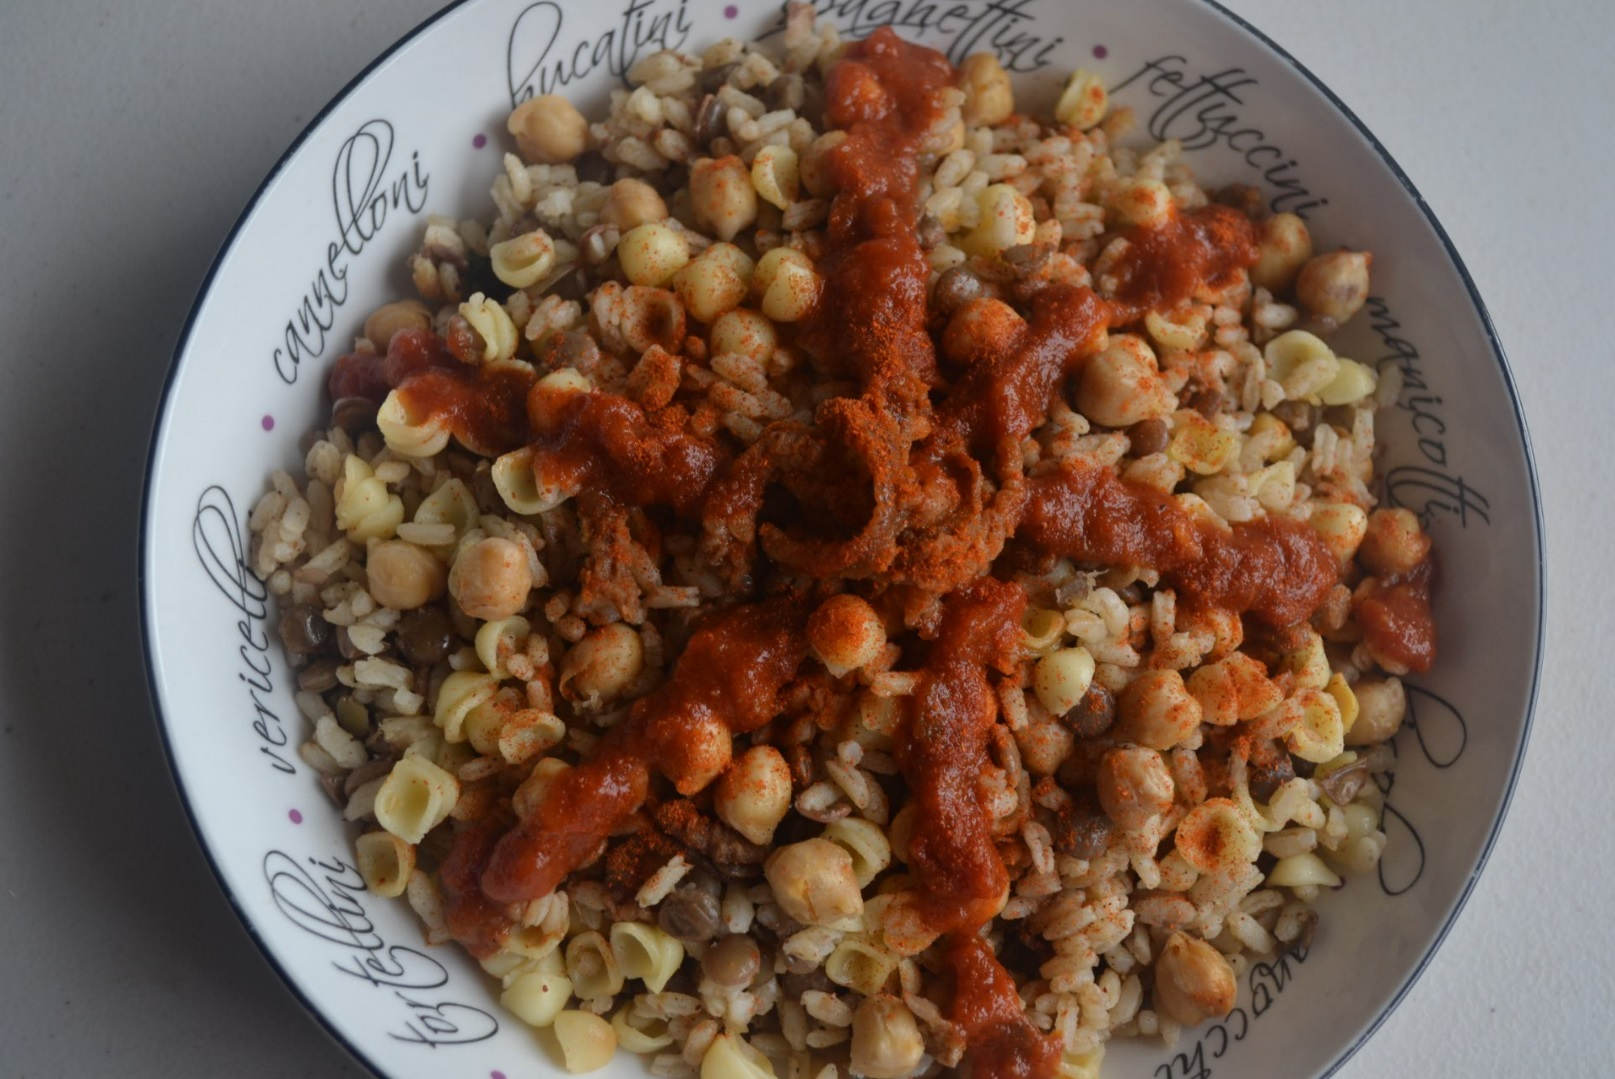 Koshari how to make egypts national dish egyptian streets koshari is the ultimate egyptian comfort food whether its a family recipe or a bustling cairo street vendor koshari never disappoints forumfinder Images